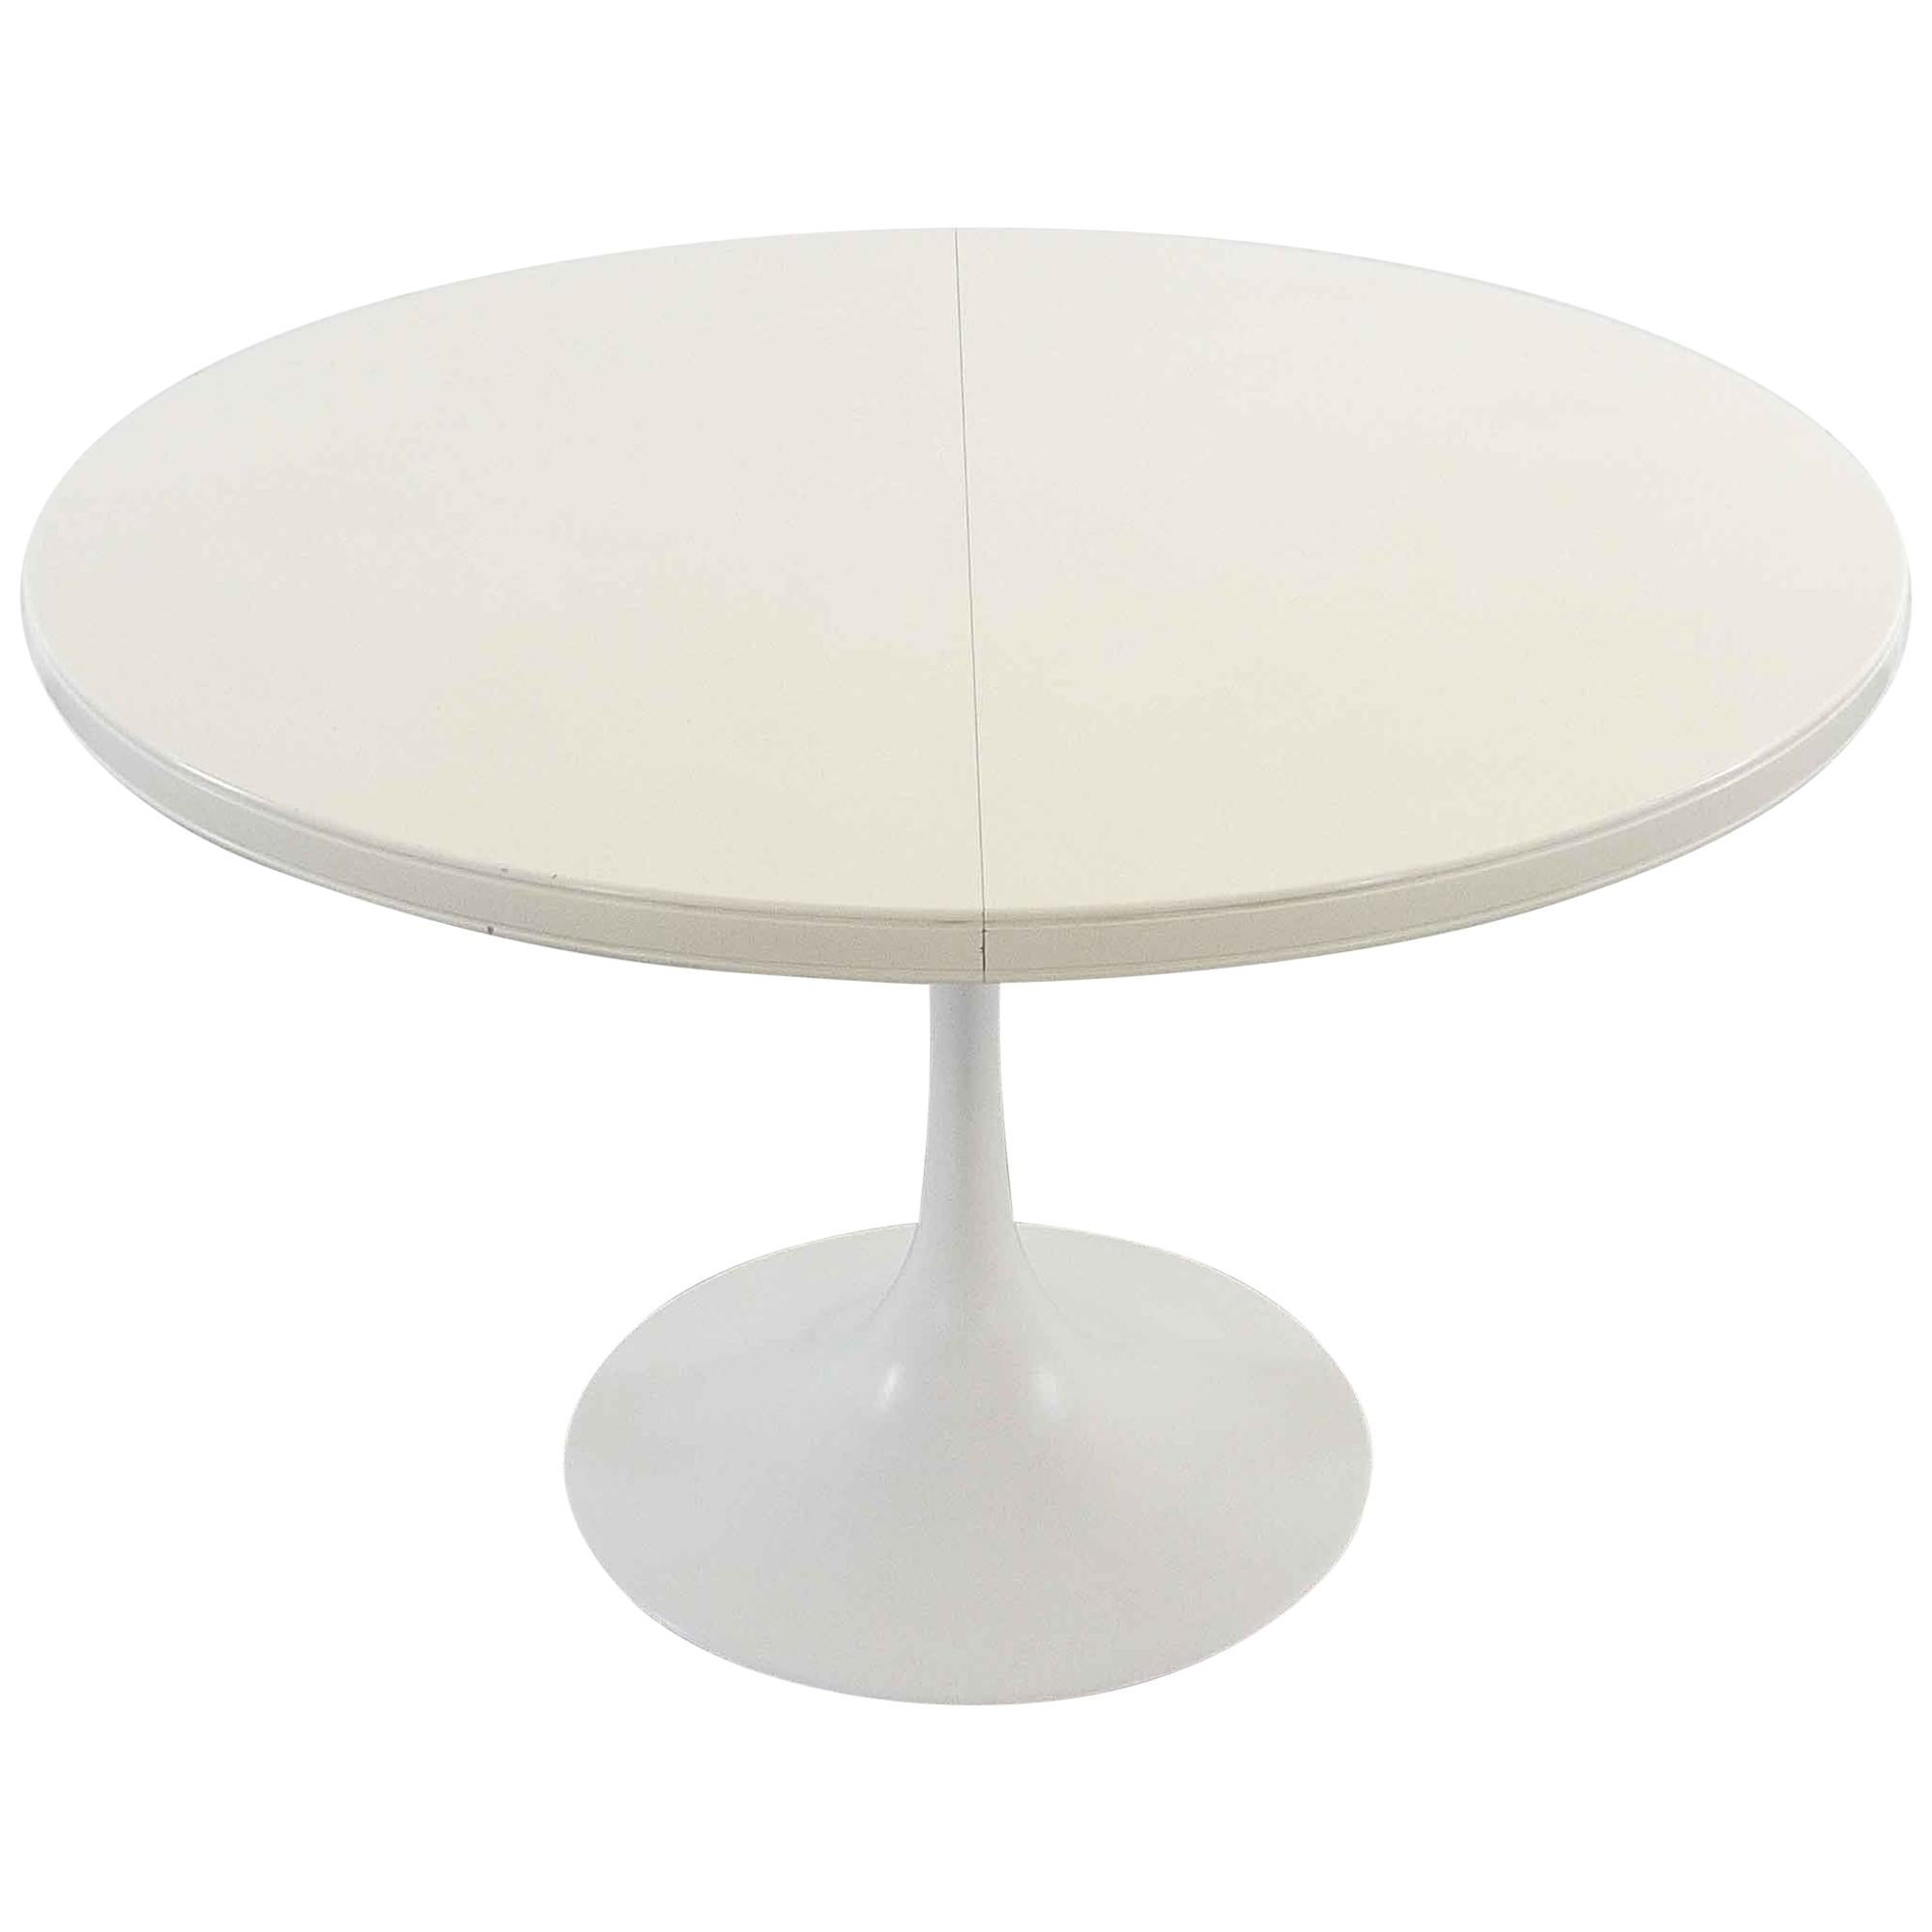 Extendable Round Tulip Dining Table In White, 1970s